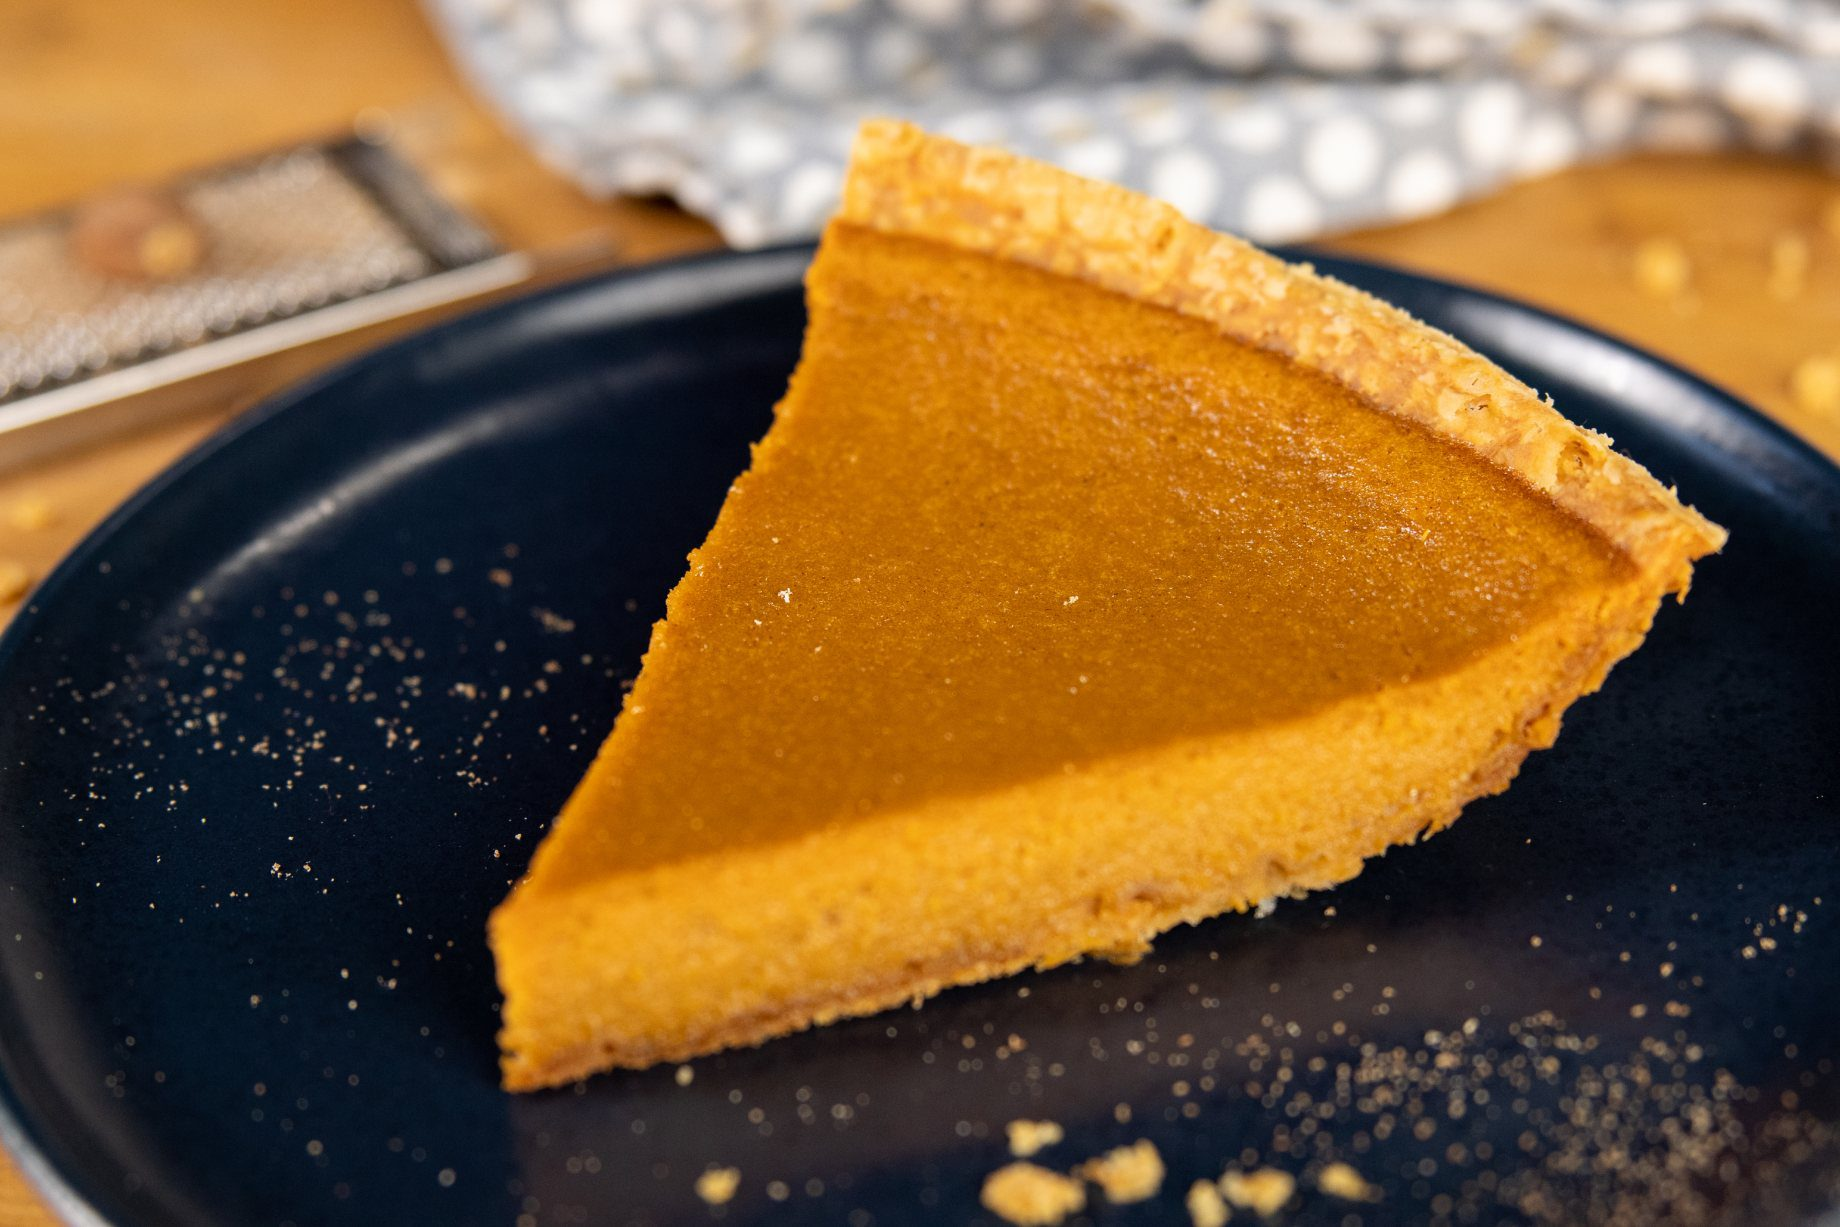 A slice of silky smooth sweet potato pie 2.0.